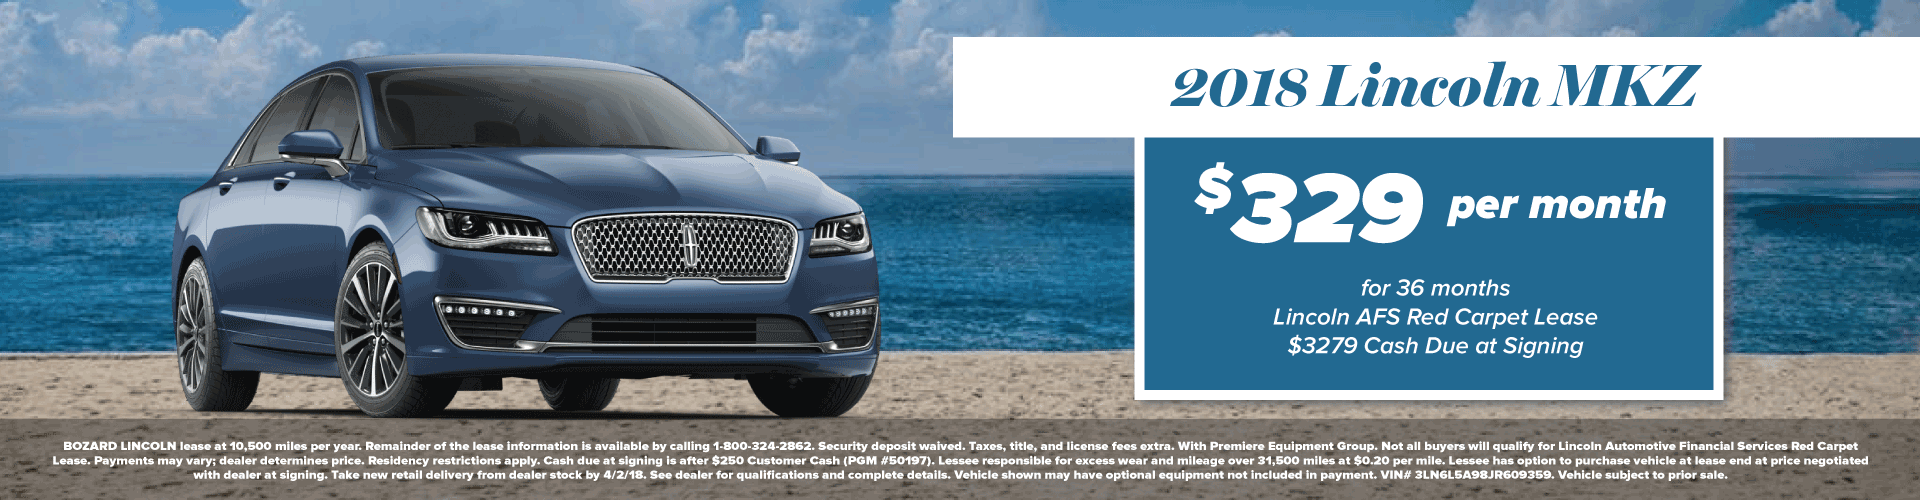 2018 Lincoln MKZ Lease Offer